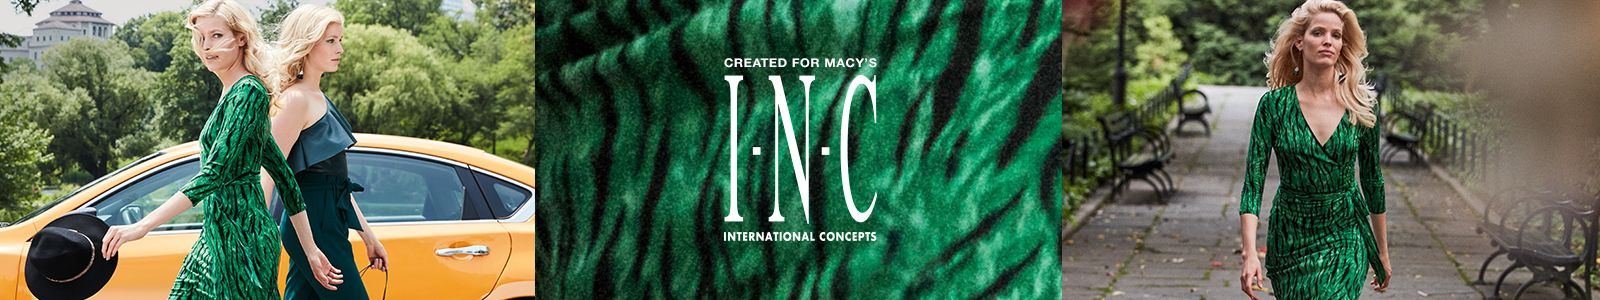 Created for Macy's, I.N.C, International Concepts